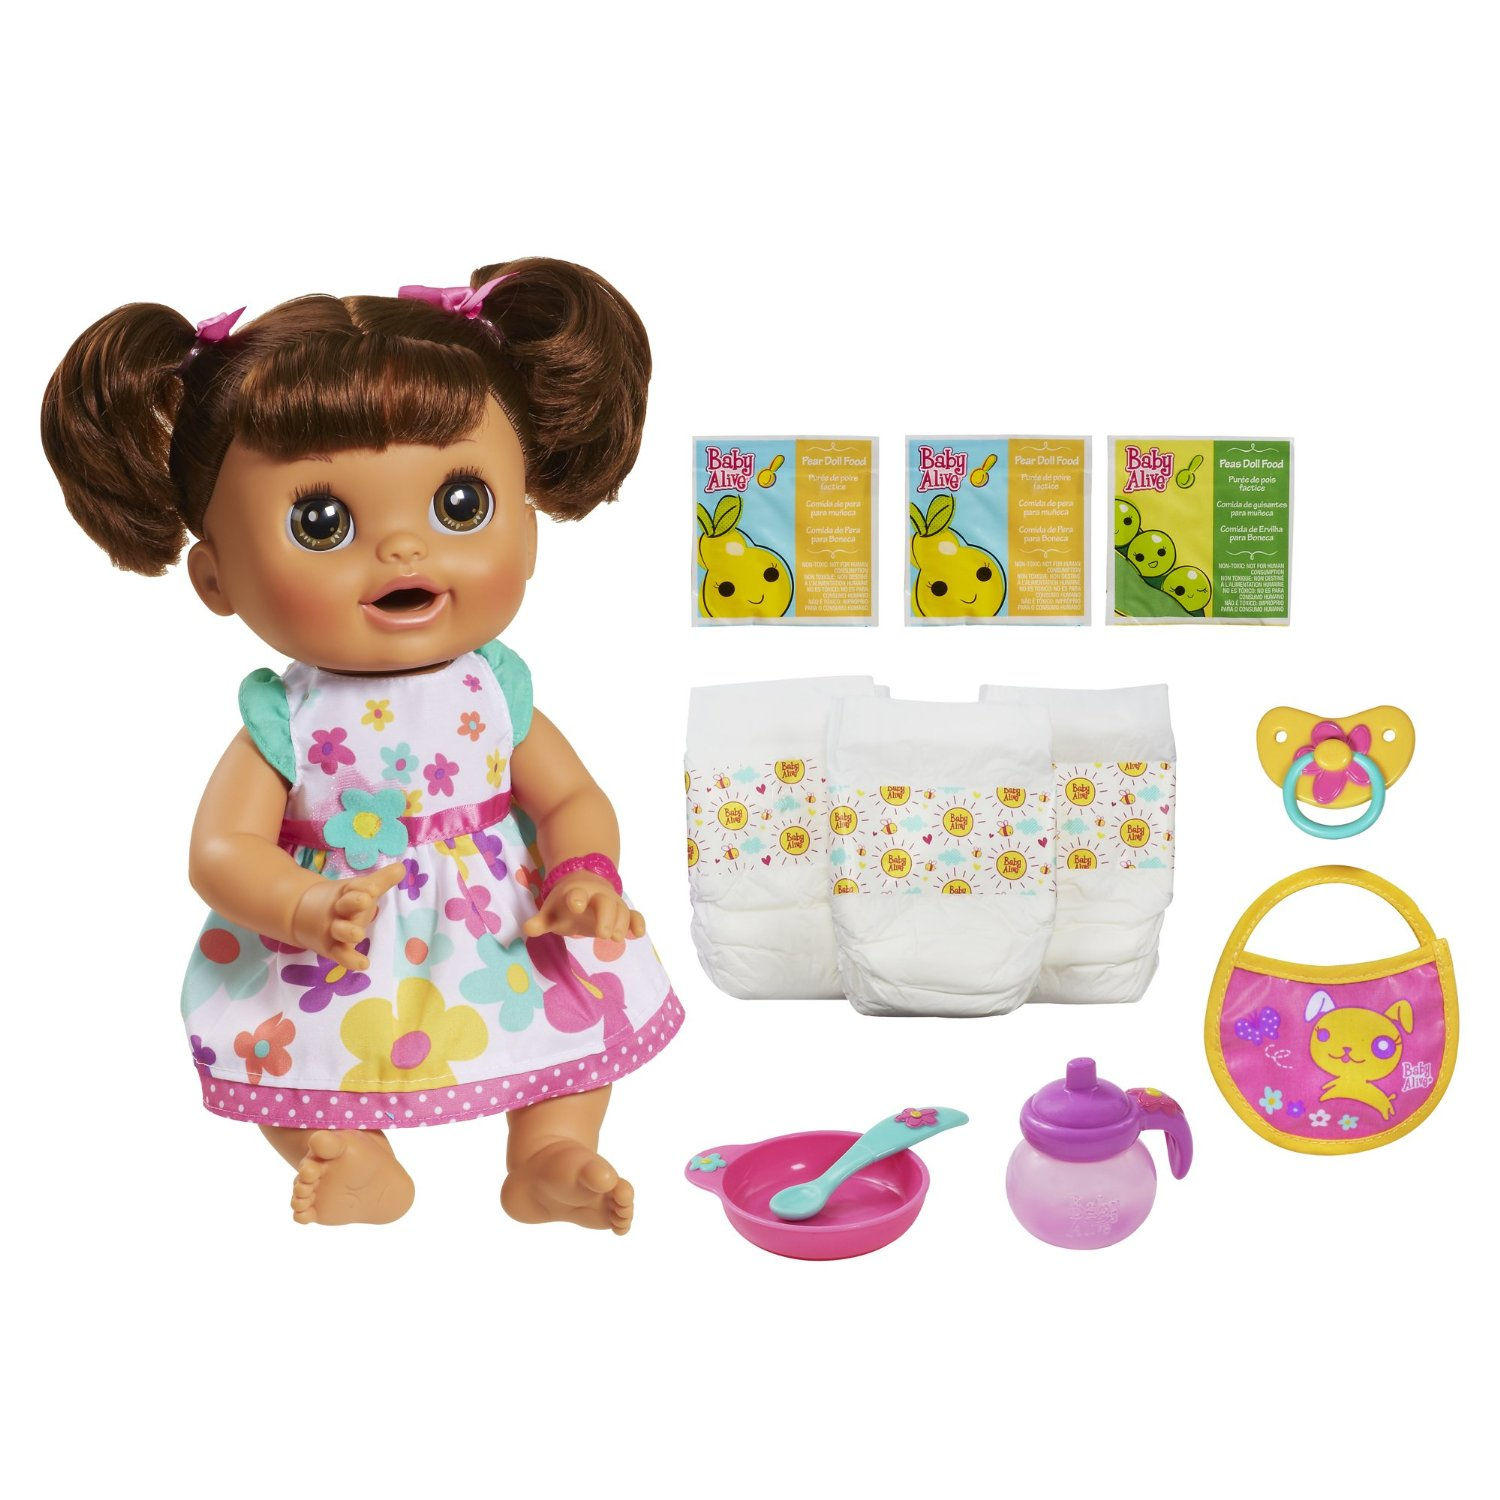 Buy Baby Alive Real Surprises Baby Doll Discontinued by manufacturer